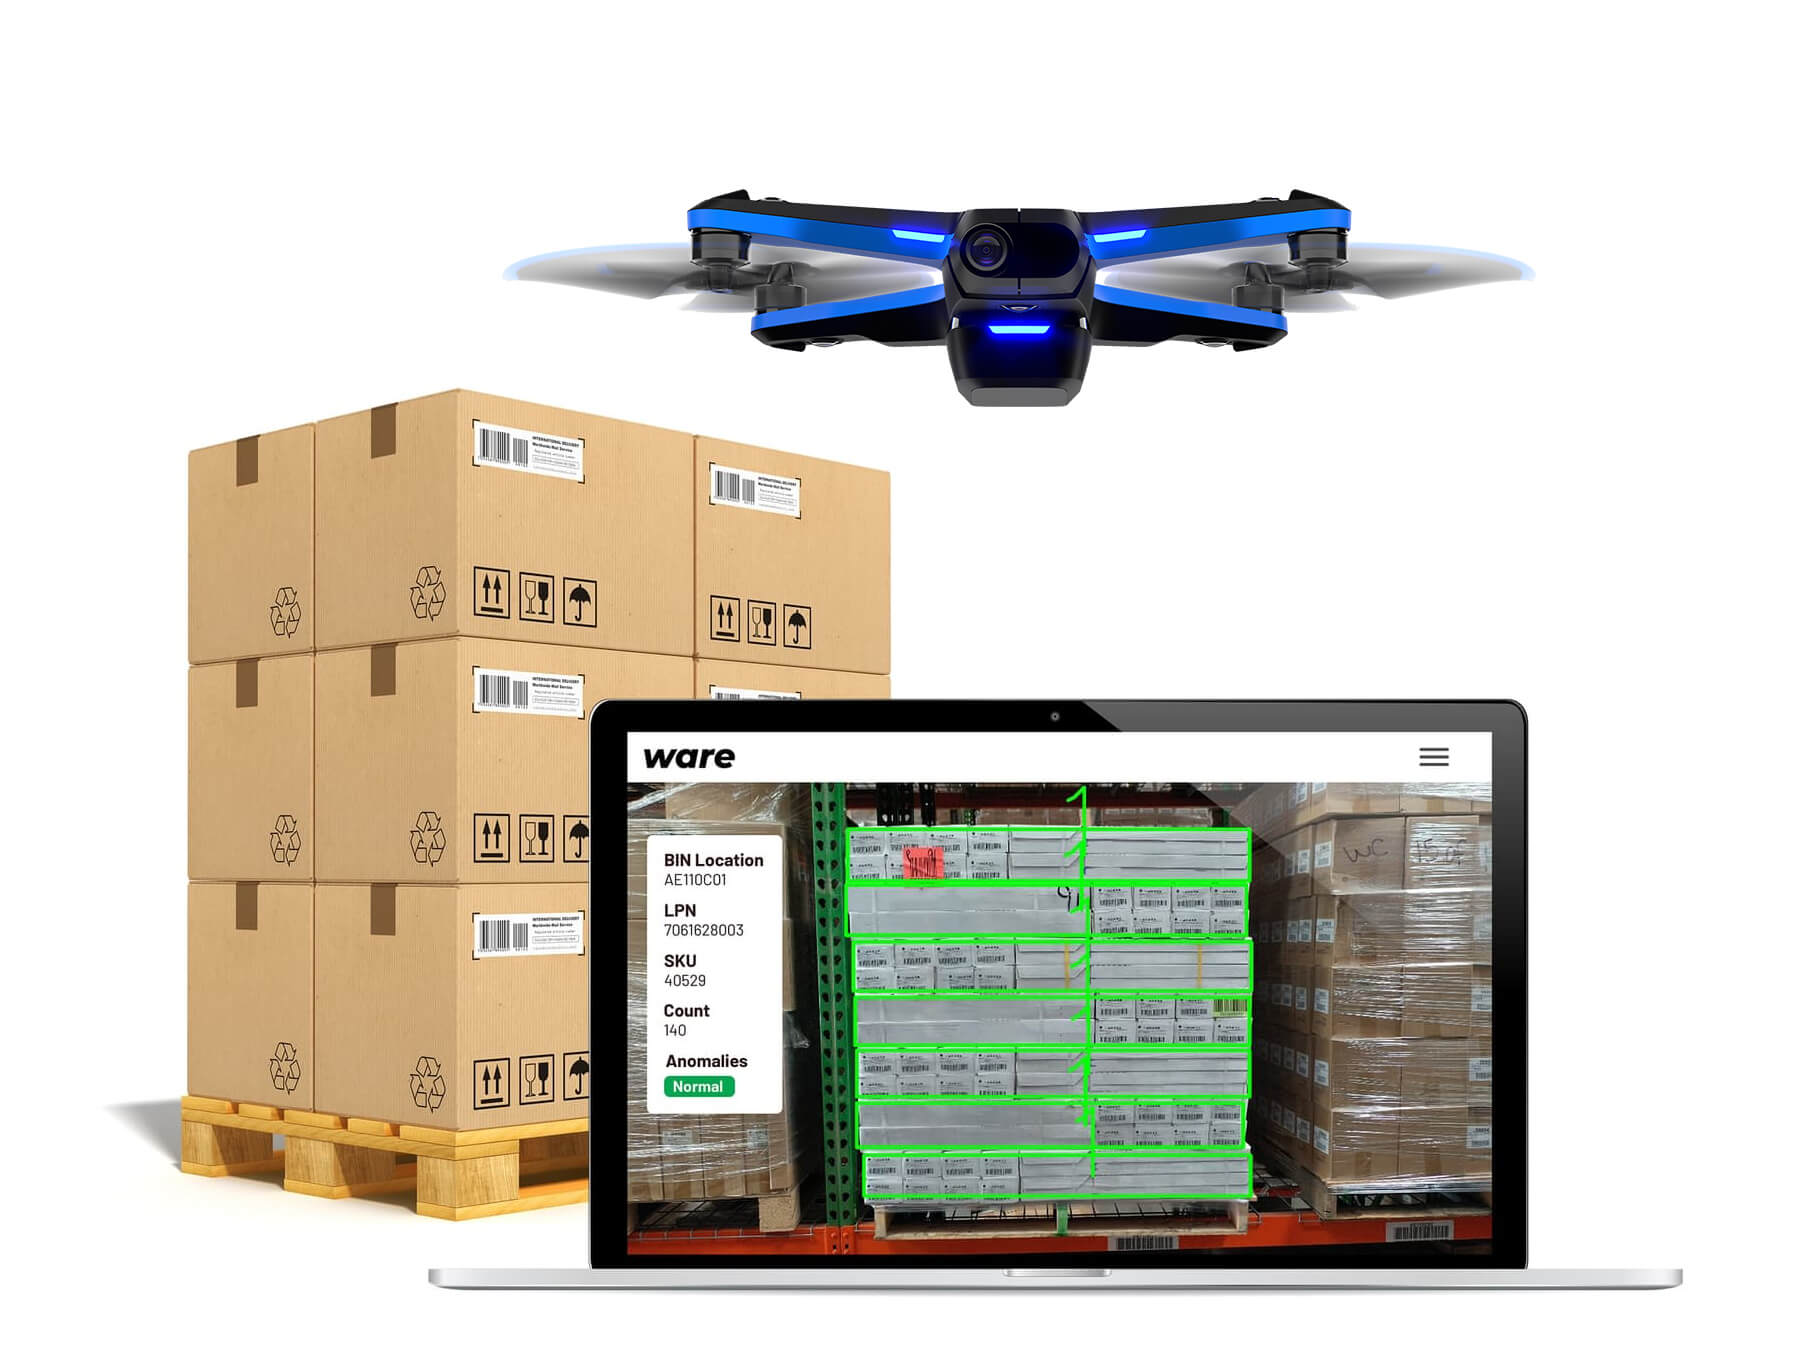 Ware drone flying among a pallet and Ware software for case counting